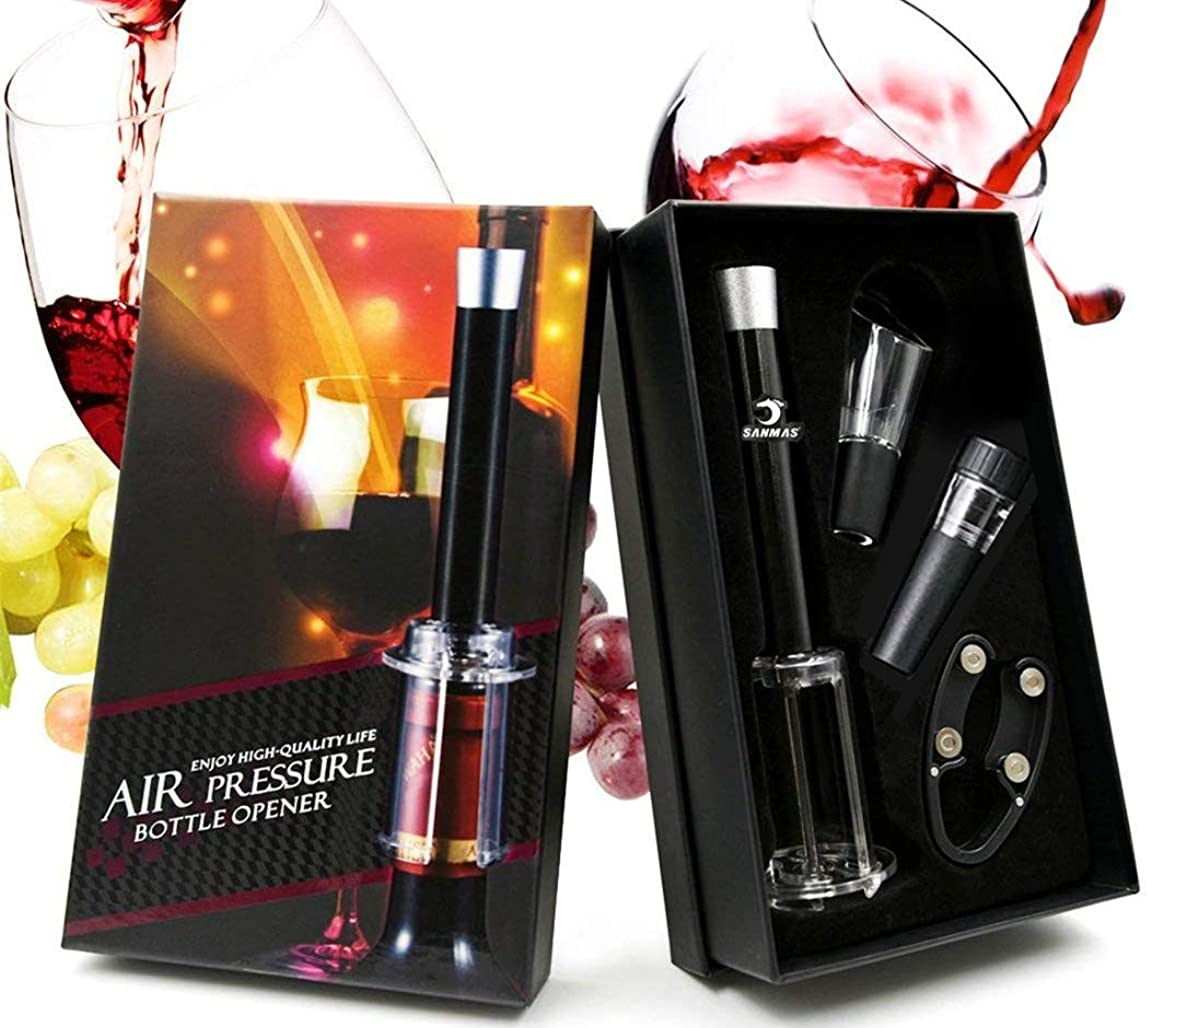 Wine Air Pressure Pump Opener Set, SANMAS Wine Bottle Opener with Foil Cutter, Aerator Pourer and Wine Stopper - Corkscrew Cork Remover Wine Gift Tool Accessories Great for Wine Lovers, Black